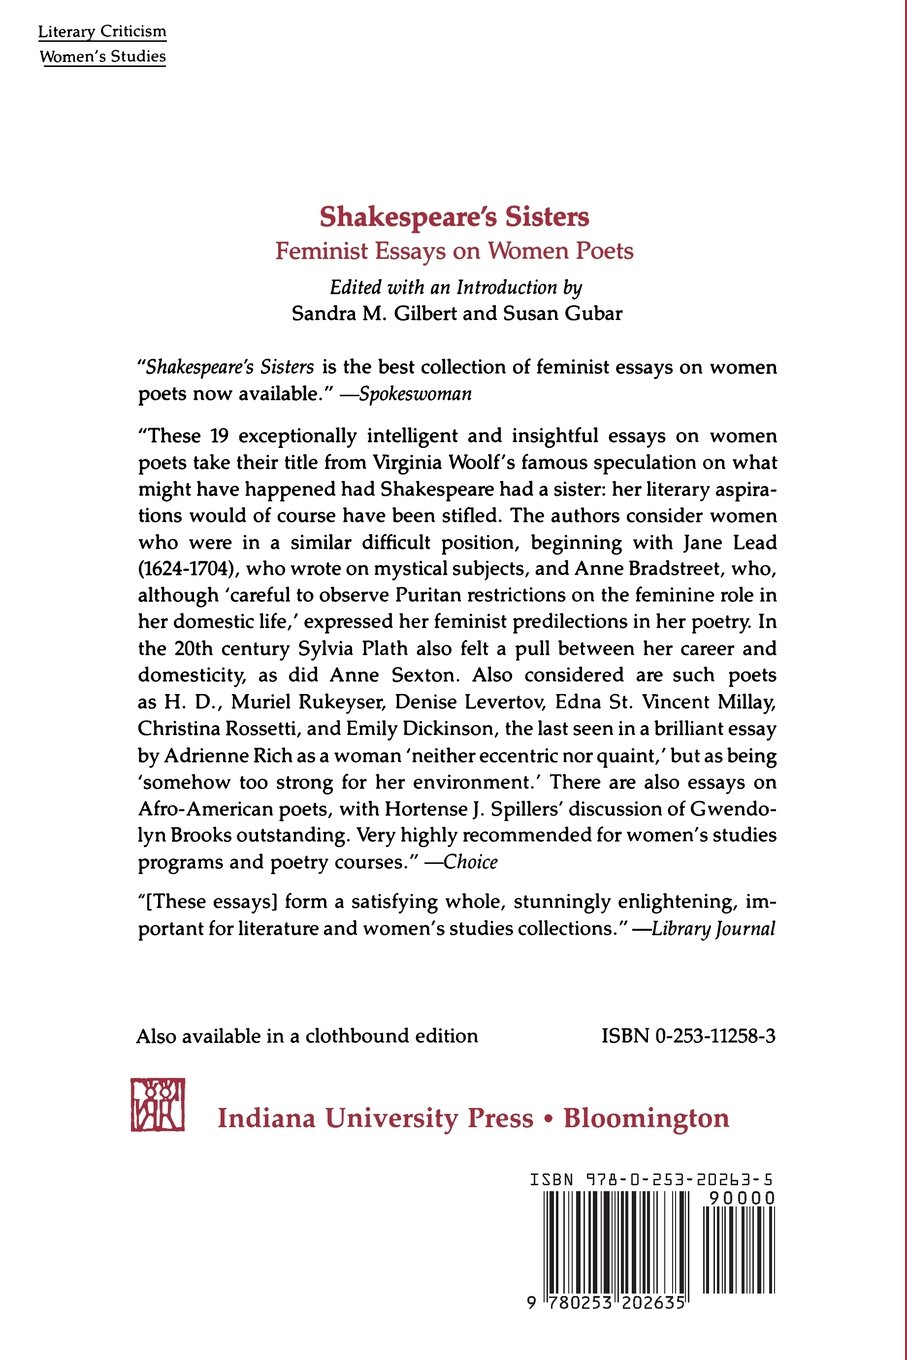 shakespeare s sisters feminist essays on women poets sandra m shakespeare s sisters feminist essays on women poets sandra m gilbert susan gubar 9780253202635 com books